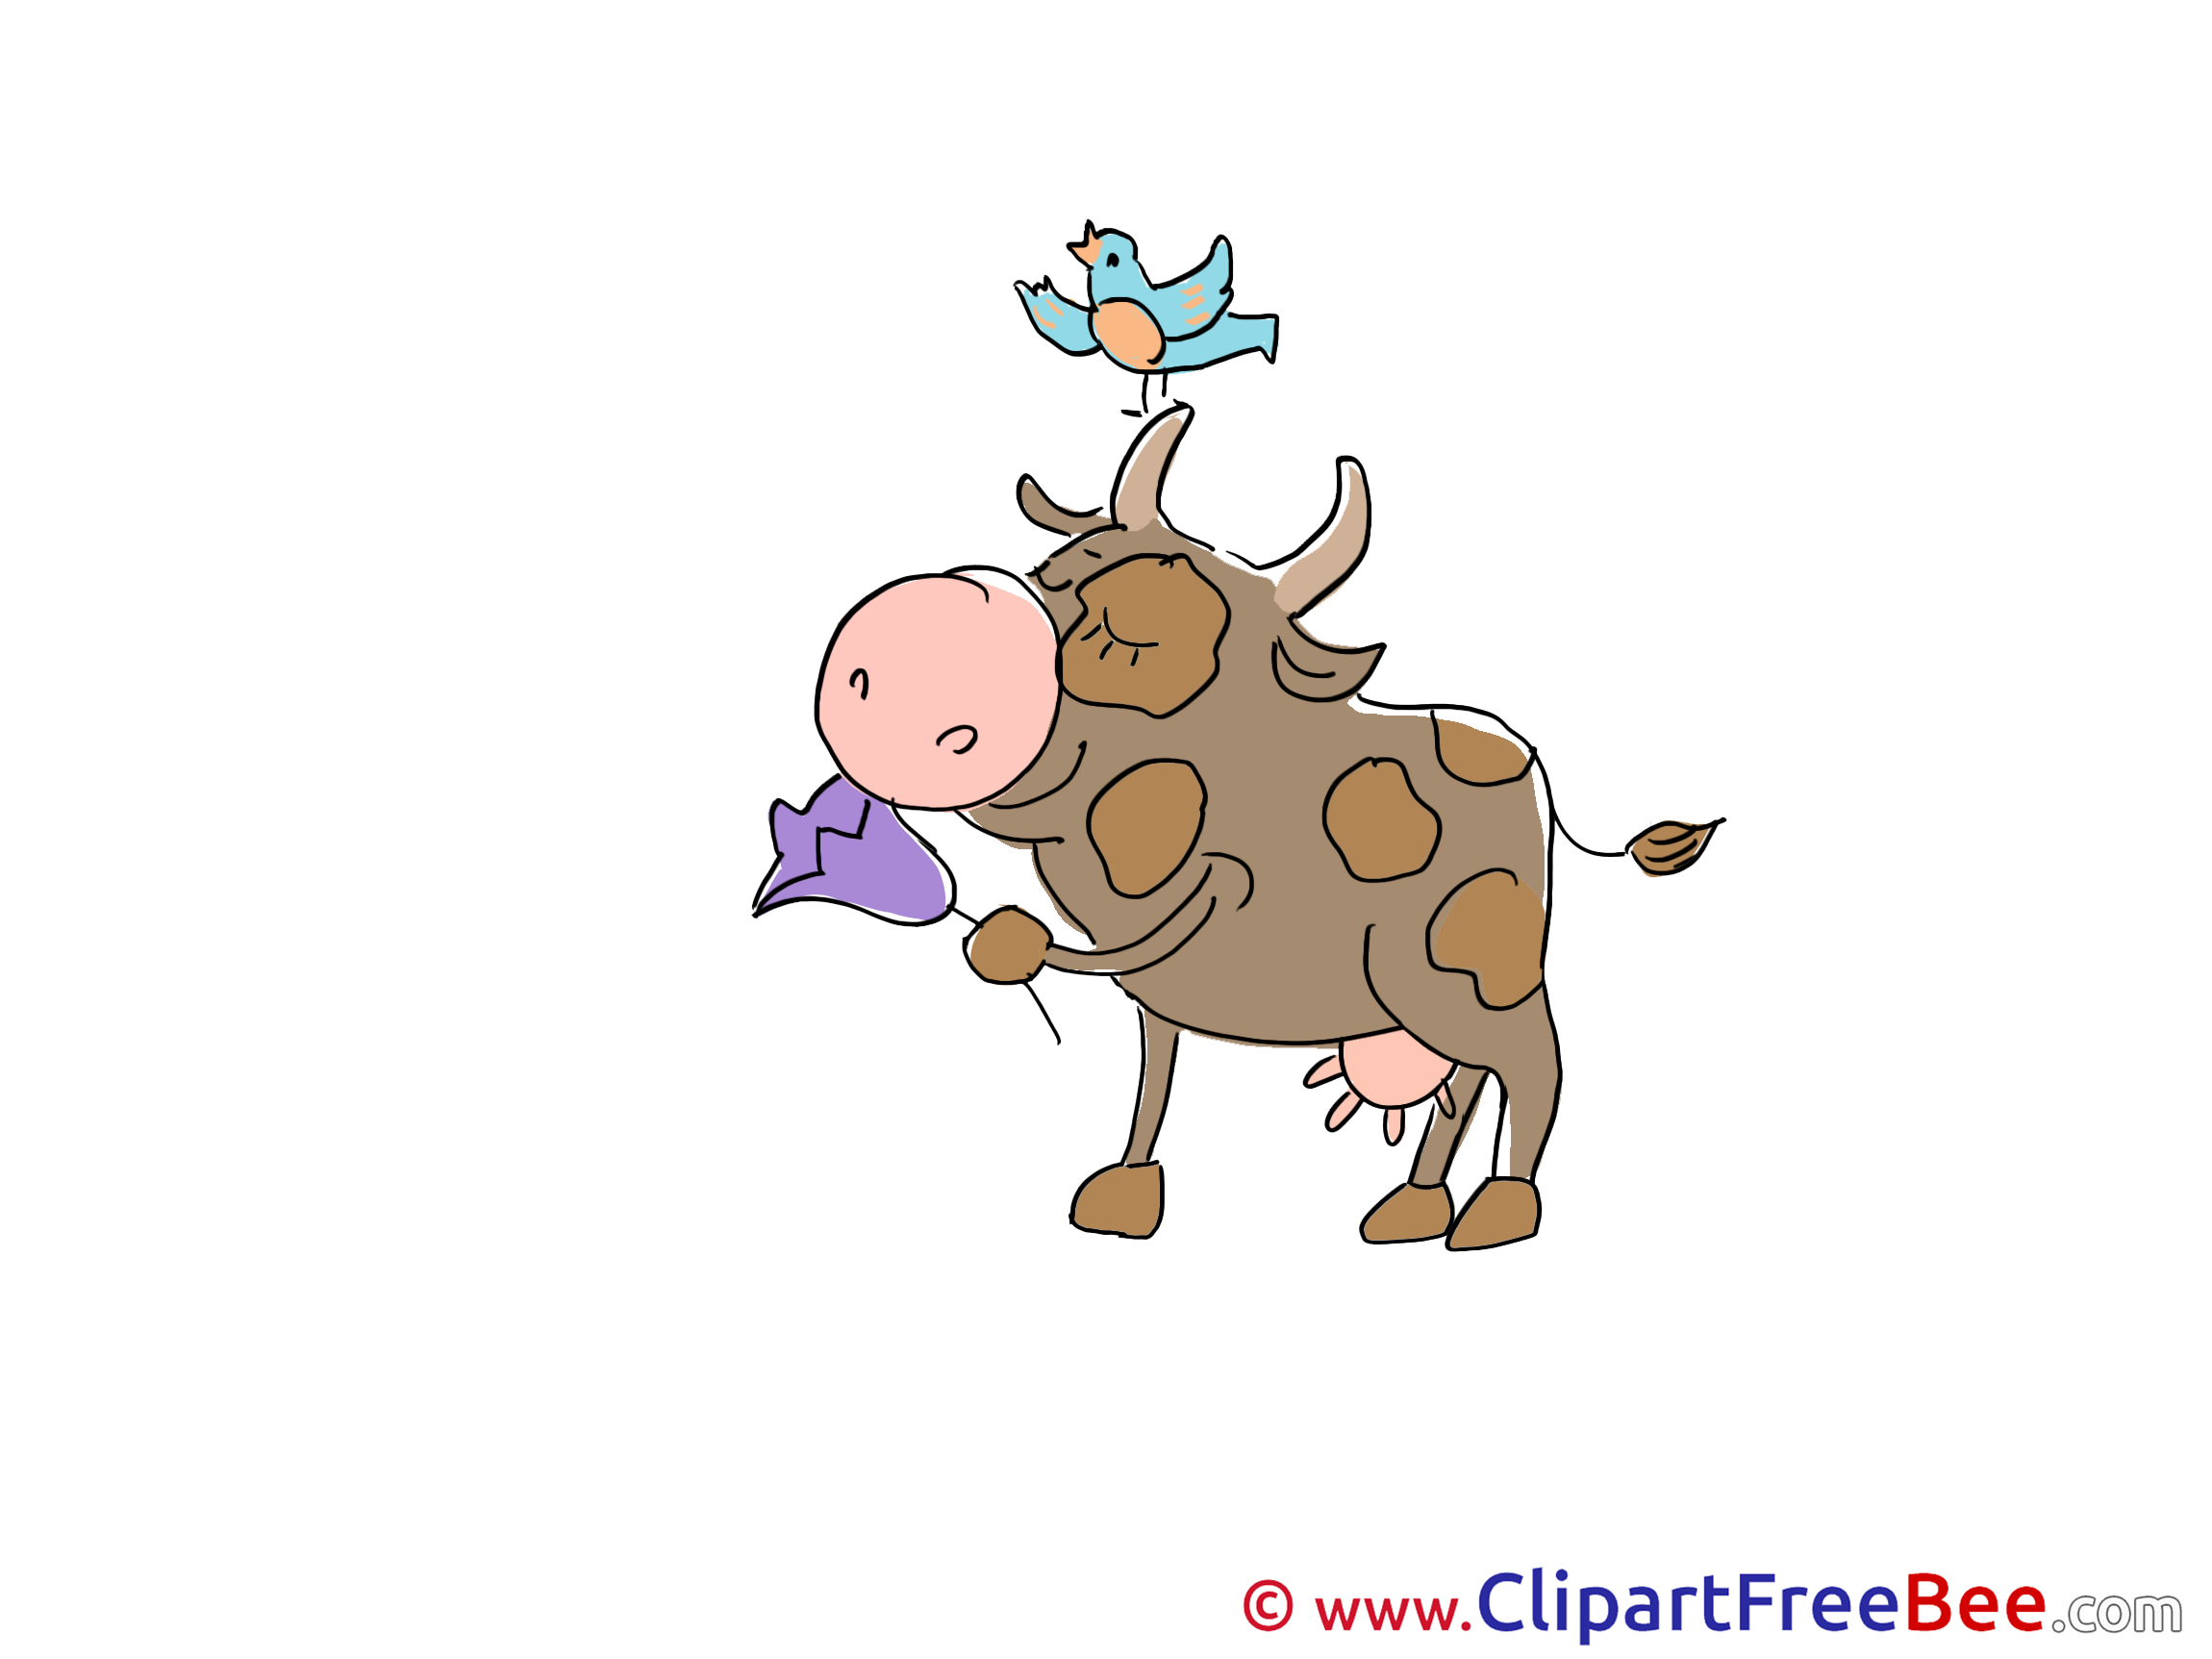 Bird Cow Flower free Cliparts for download